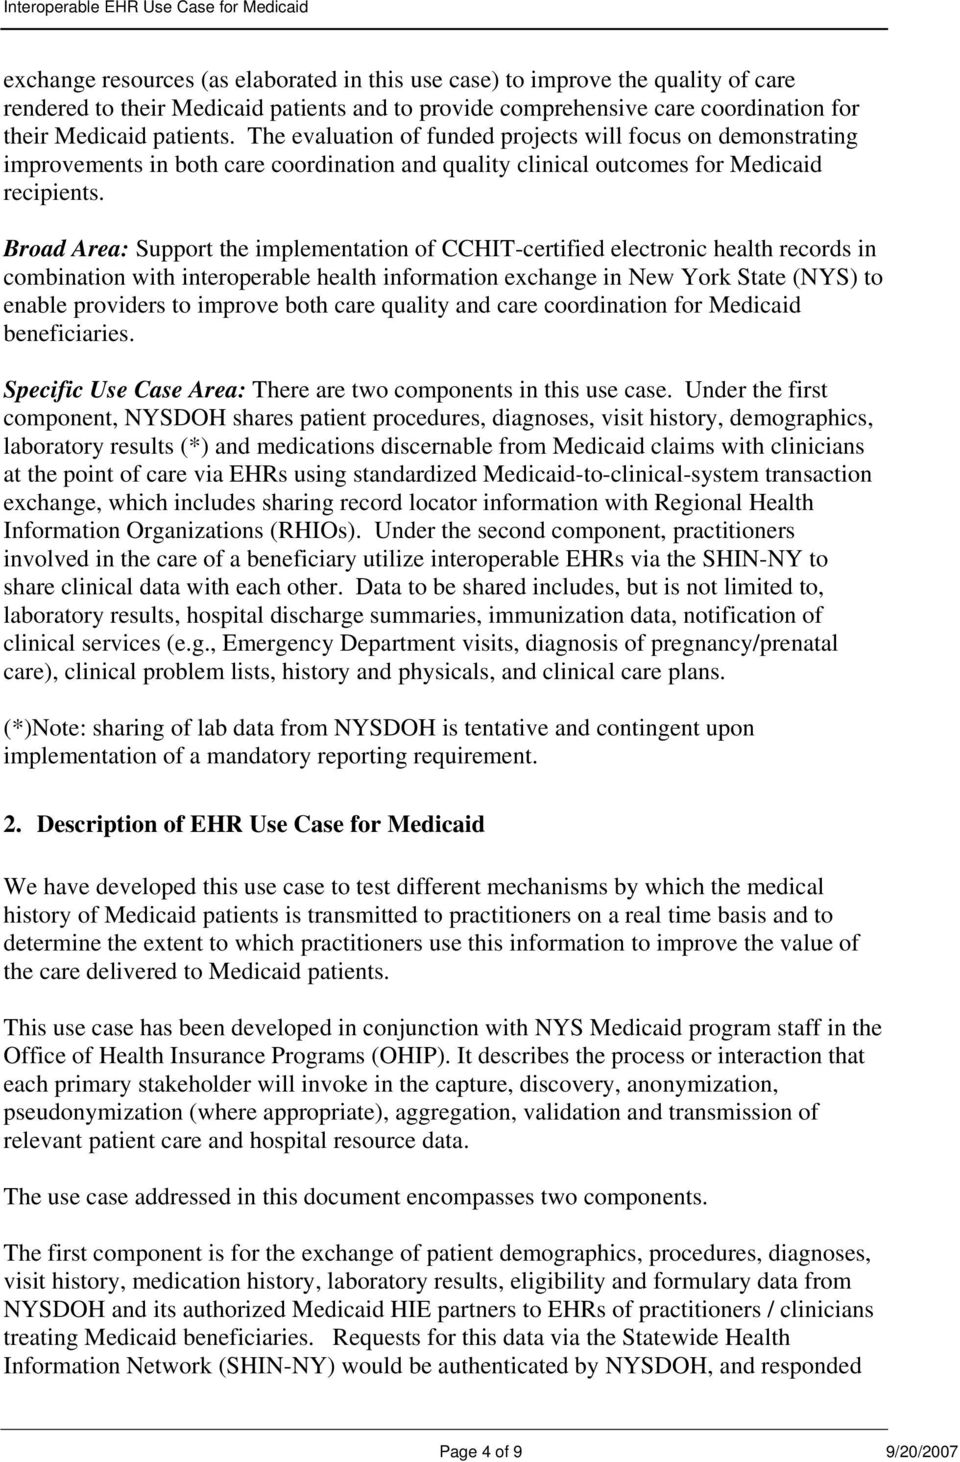 Broad Area: Support the implementation of CCHIT-certified electronic health records in combination with interoperable health information exchange in New York State (NYS) to enable providers to